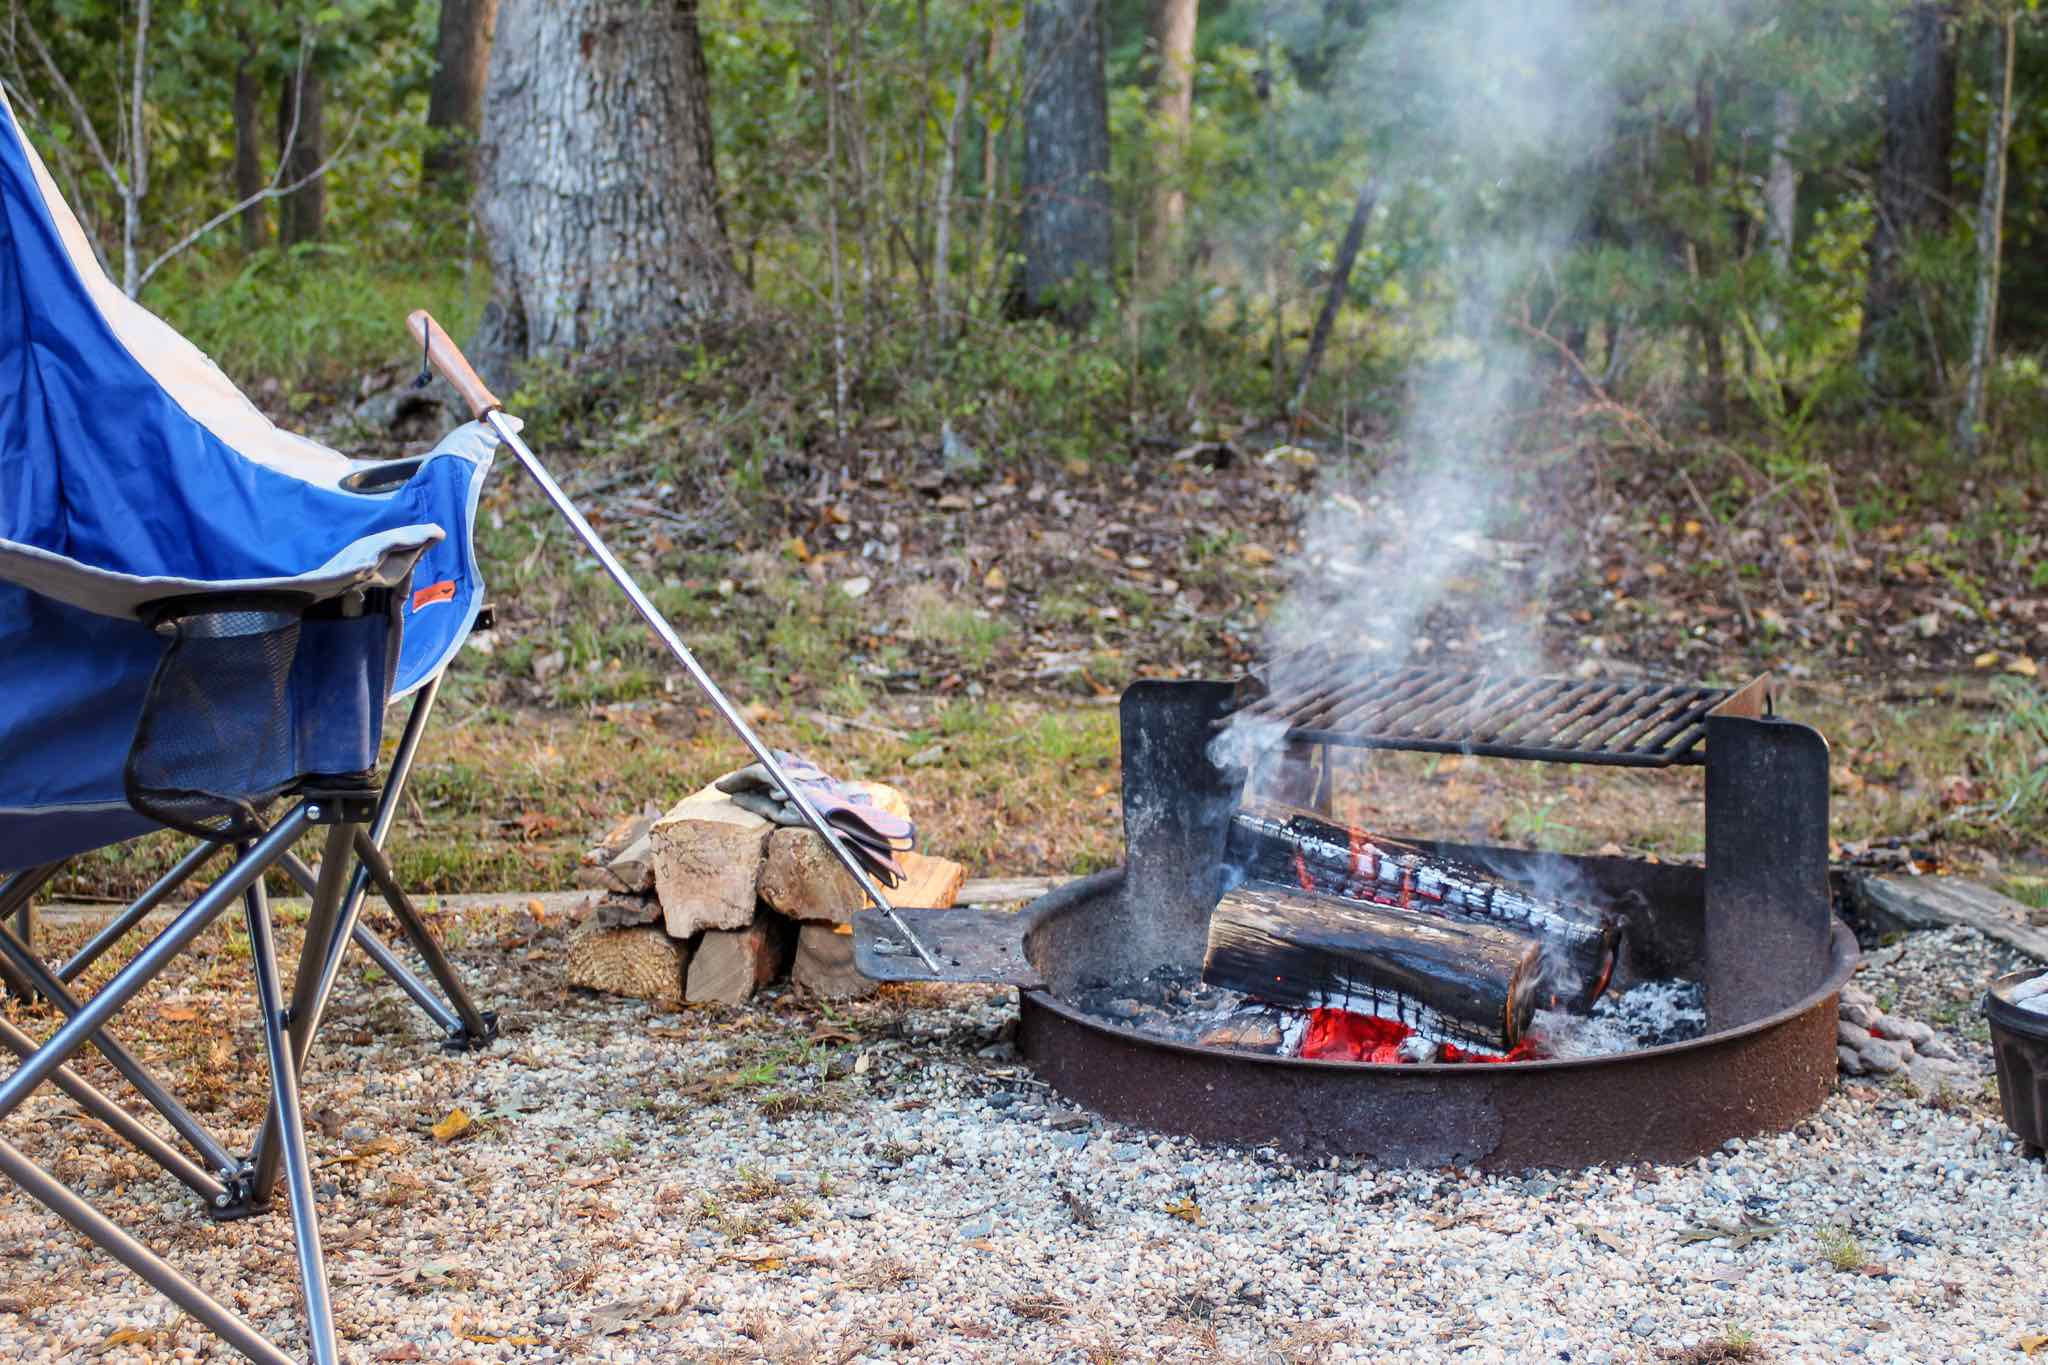 The Camping Weekend Part 2: The Other Stuff